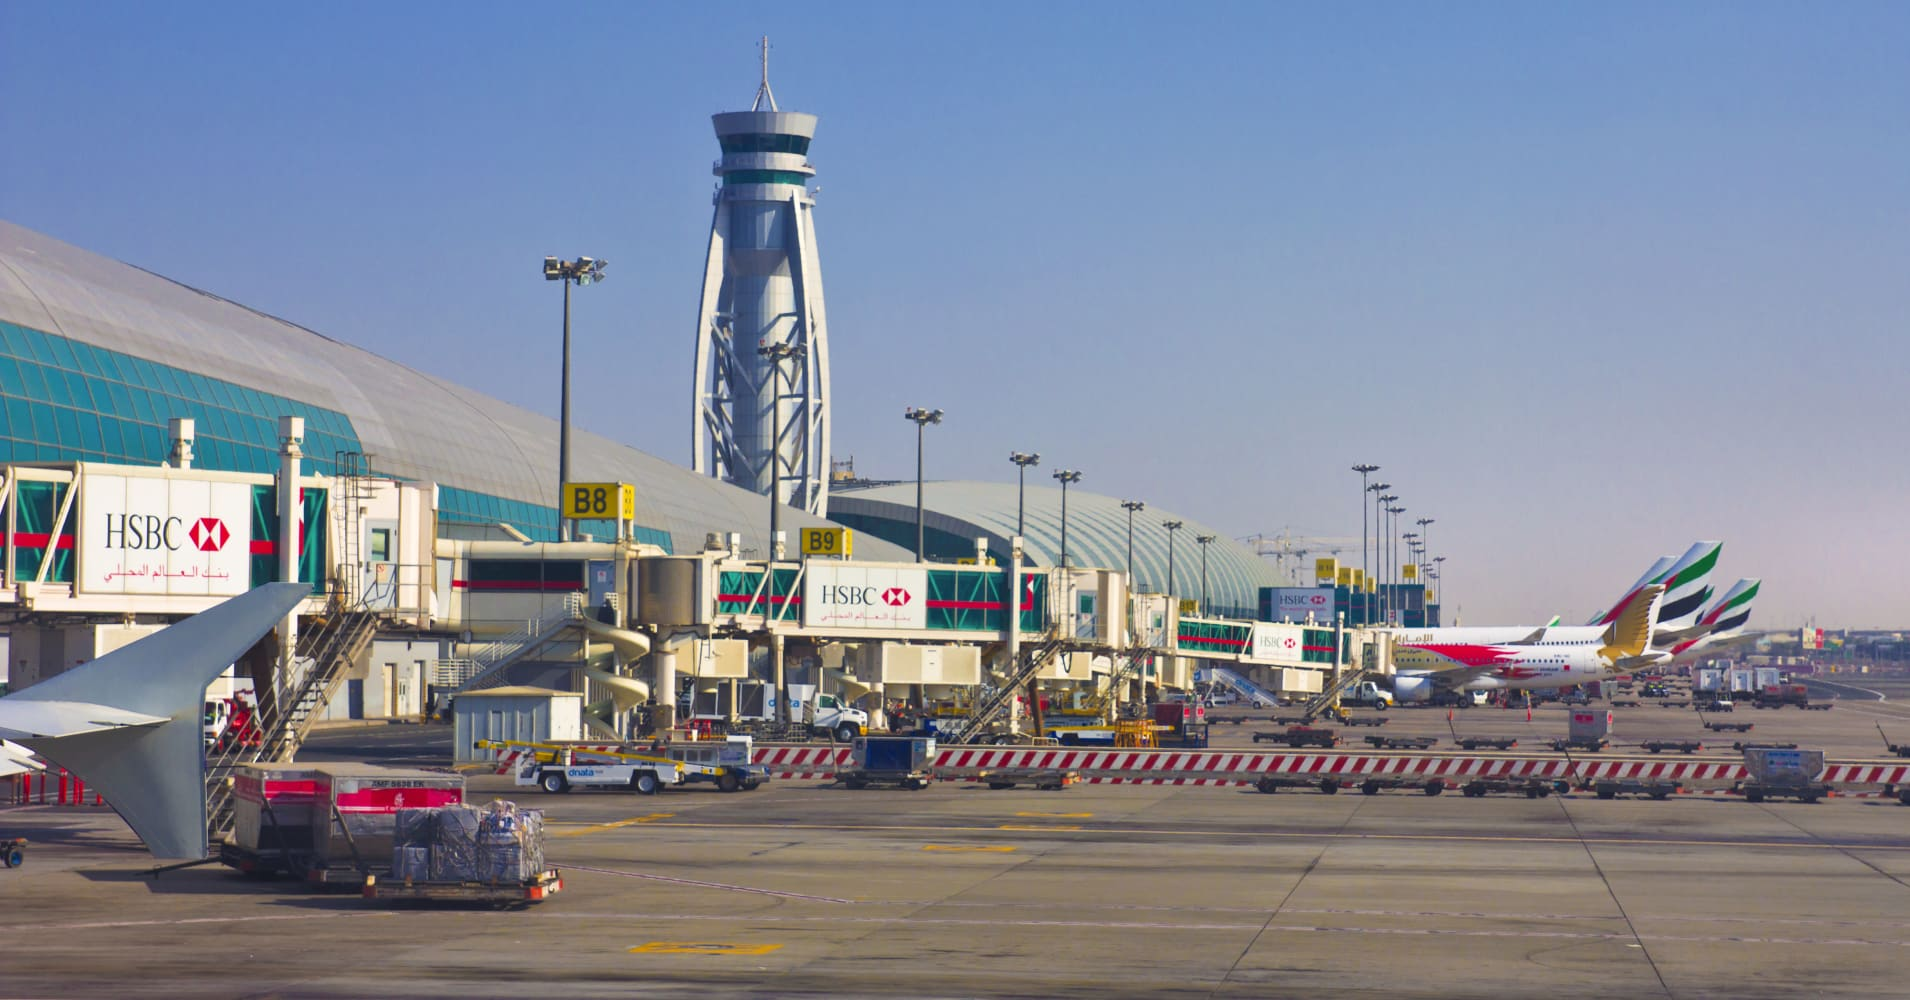 Dubai airport is on its way to receiving its 1 billionth passenger